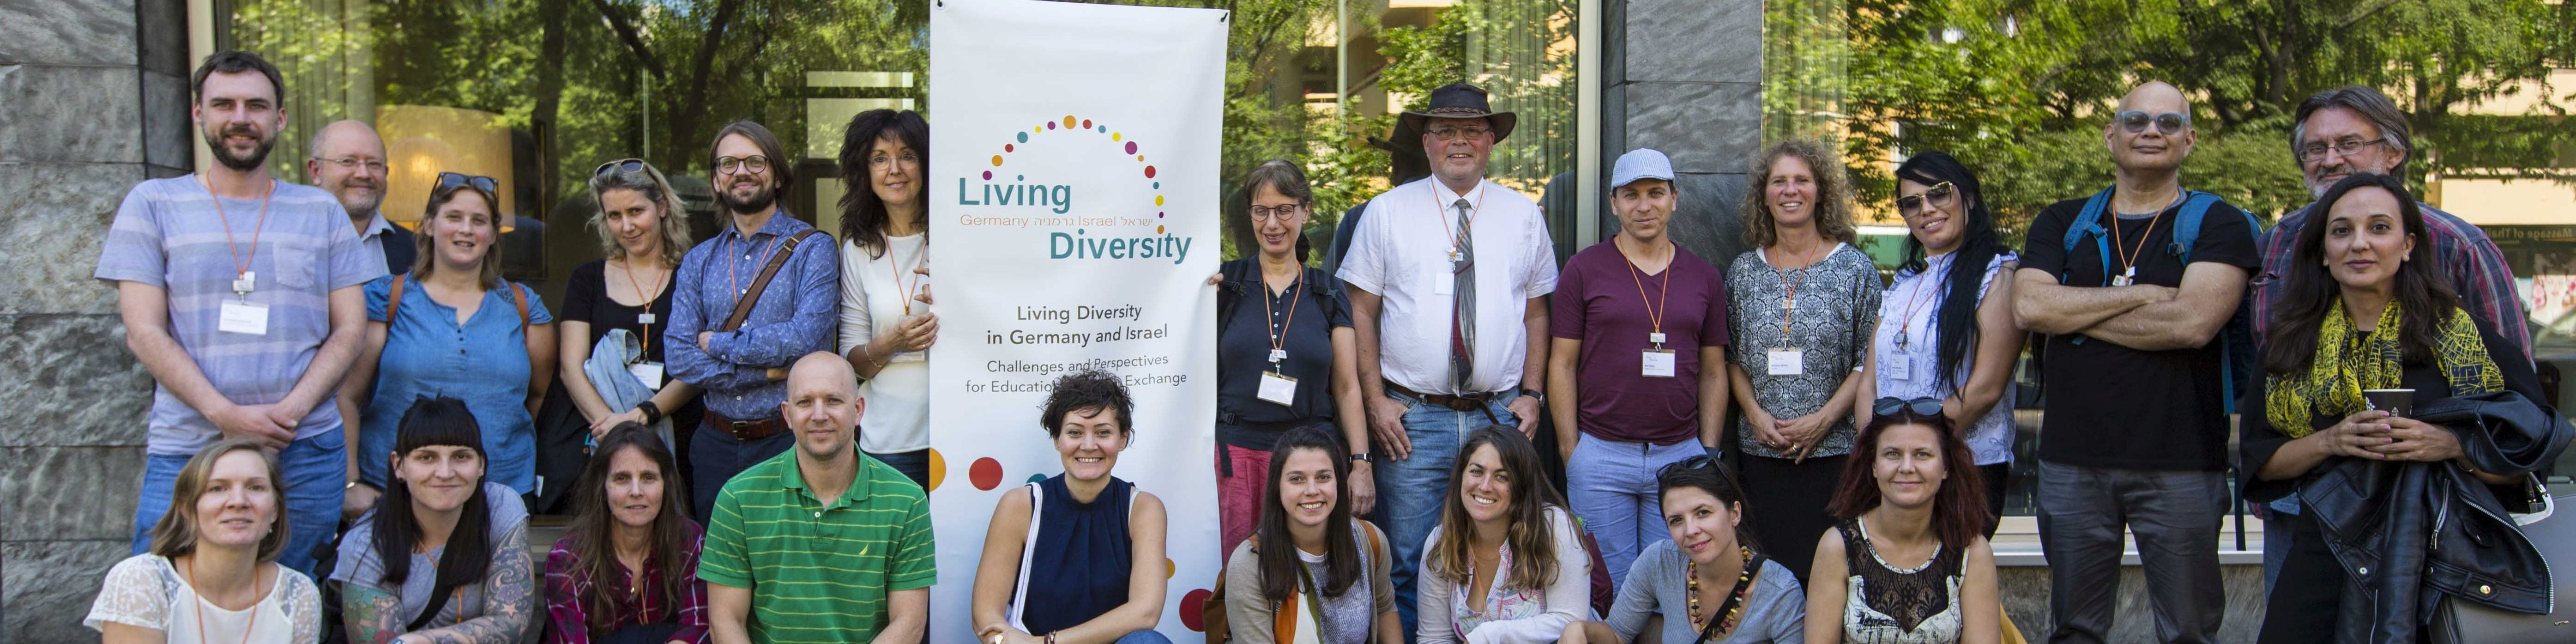 Living Diversity in Germany and Israel